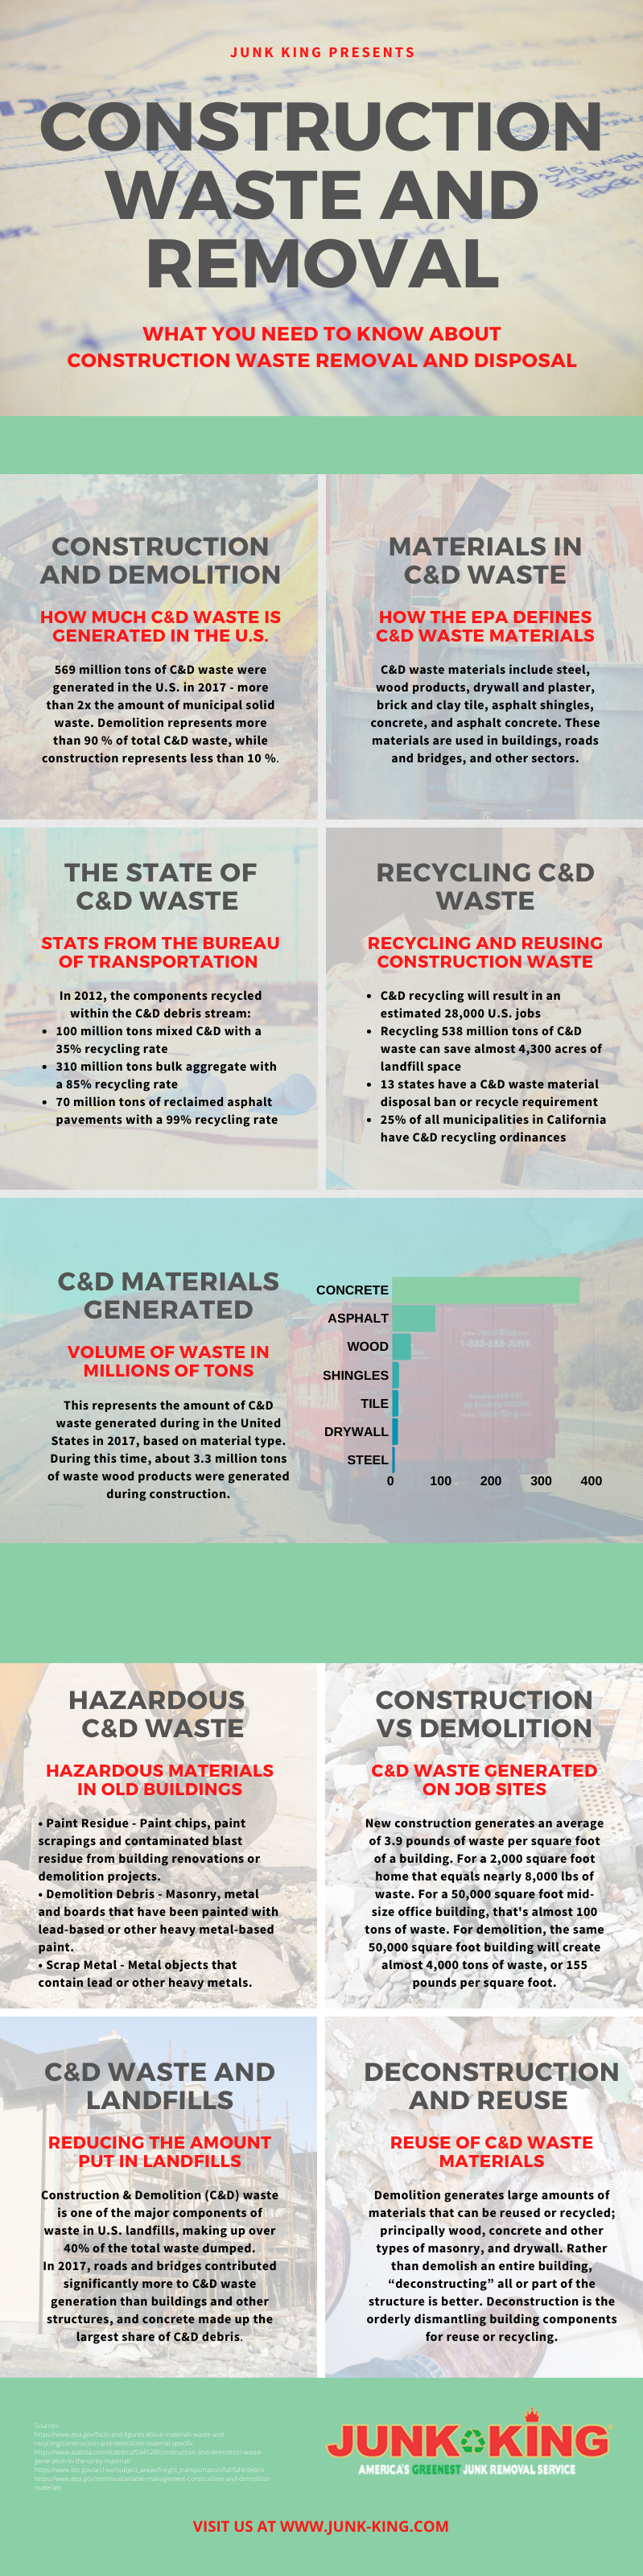 construction waste and removal infographic_png